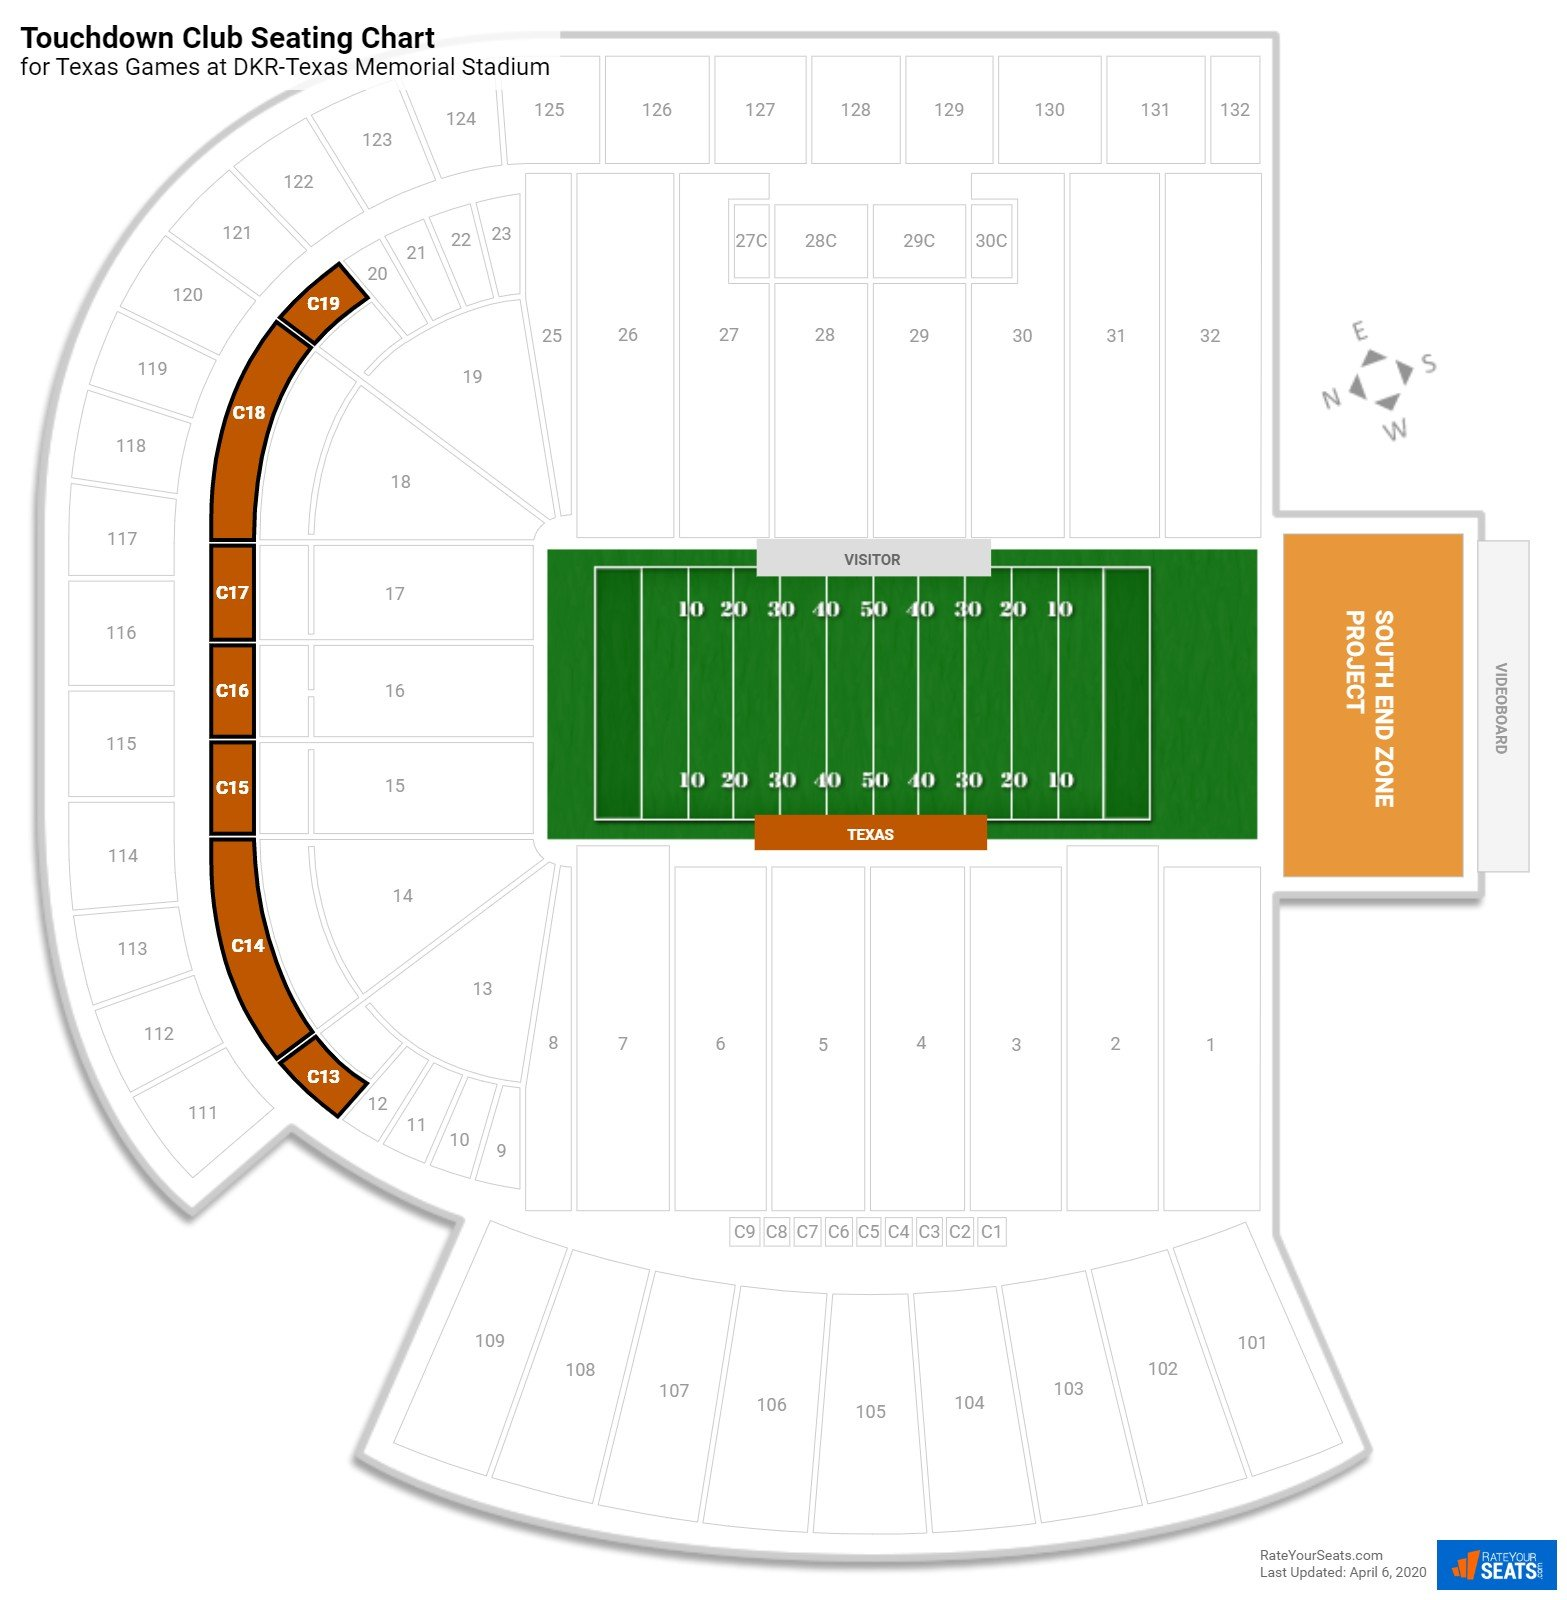 DKR-Texas Memorial Stadium Touchdown Club seating chart